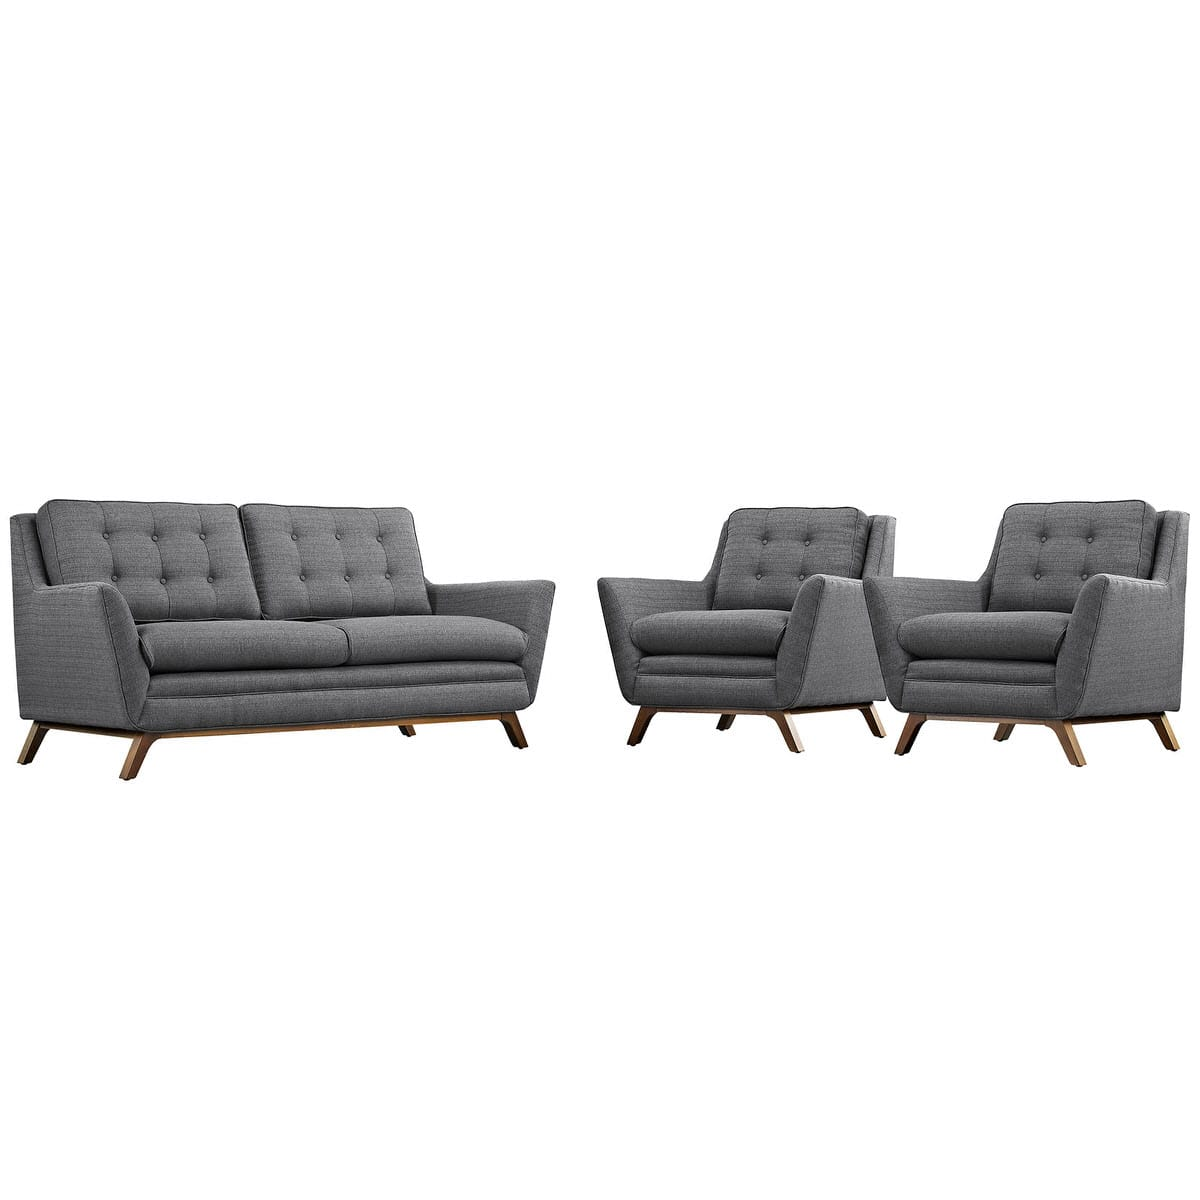 Beguile 3 Piece Upholstered Fabric Living Room Set Gray by Modern Living